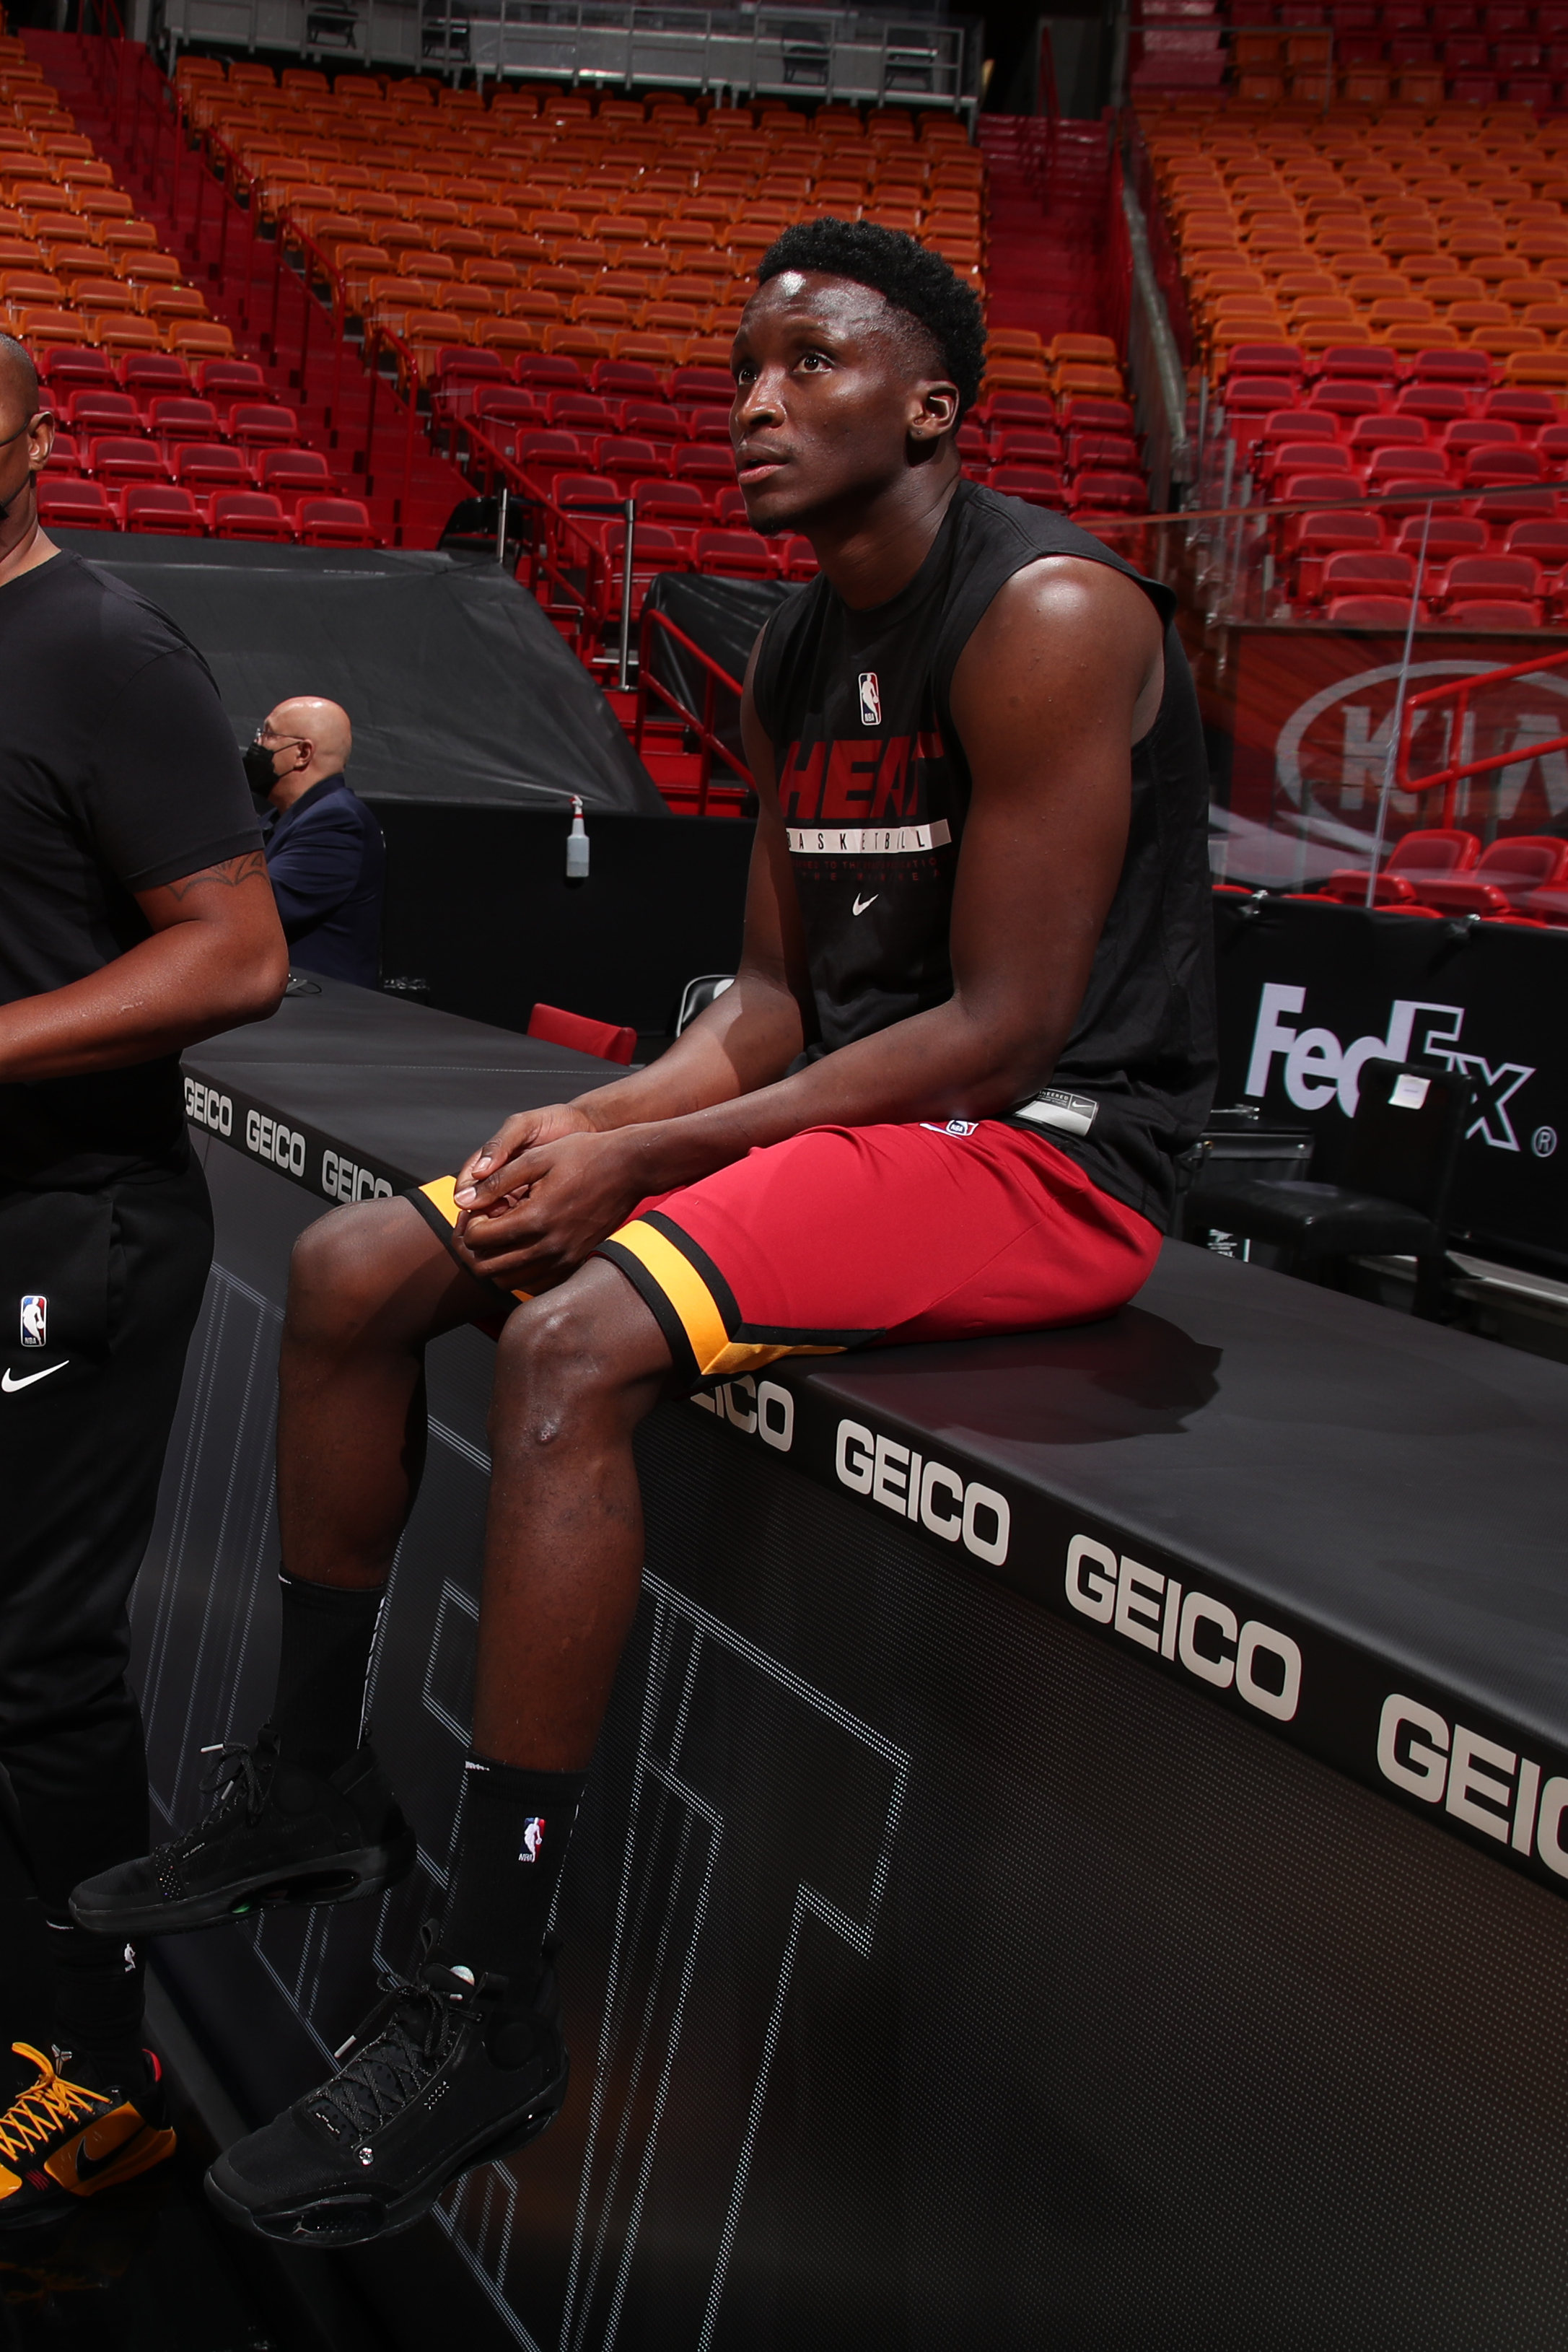 ictor Oladipo #4 of the Miami Heat looks on before the game against the Cleveland Cavaliers on April 3, 2021 at American Airlines Arena in Miami, Florida.